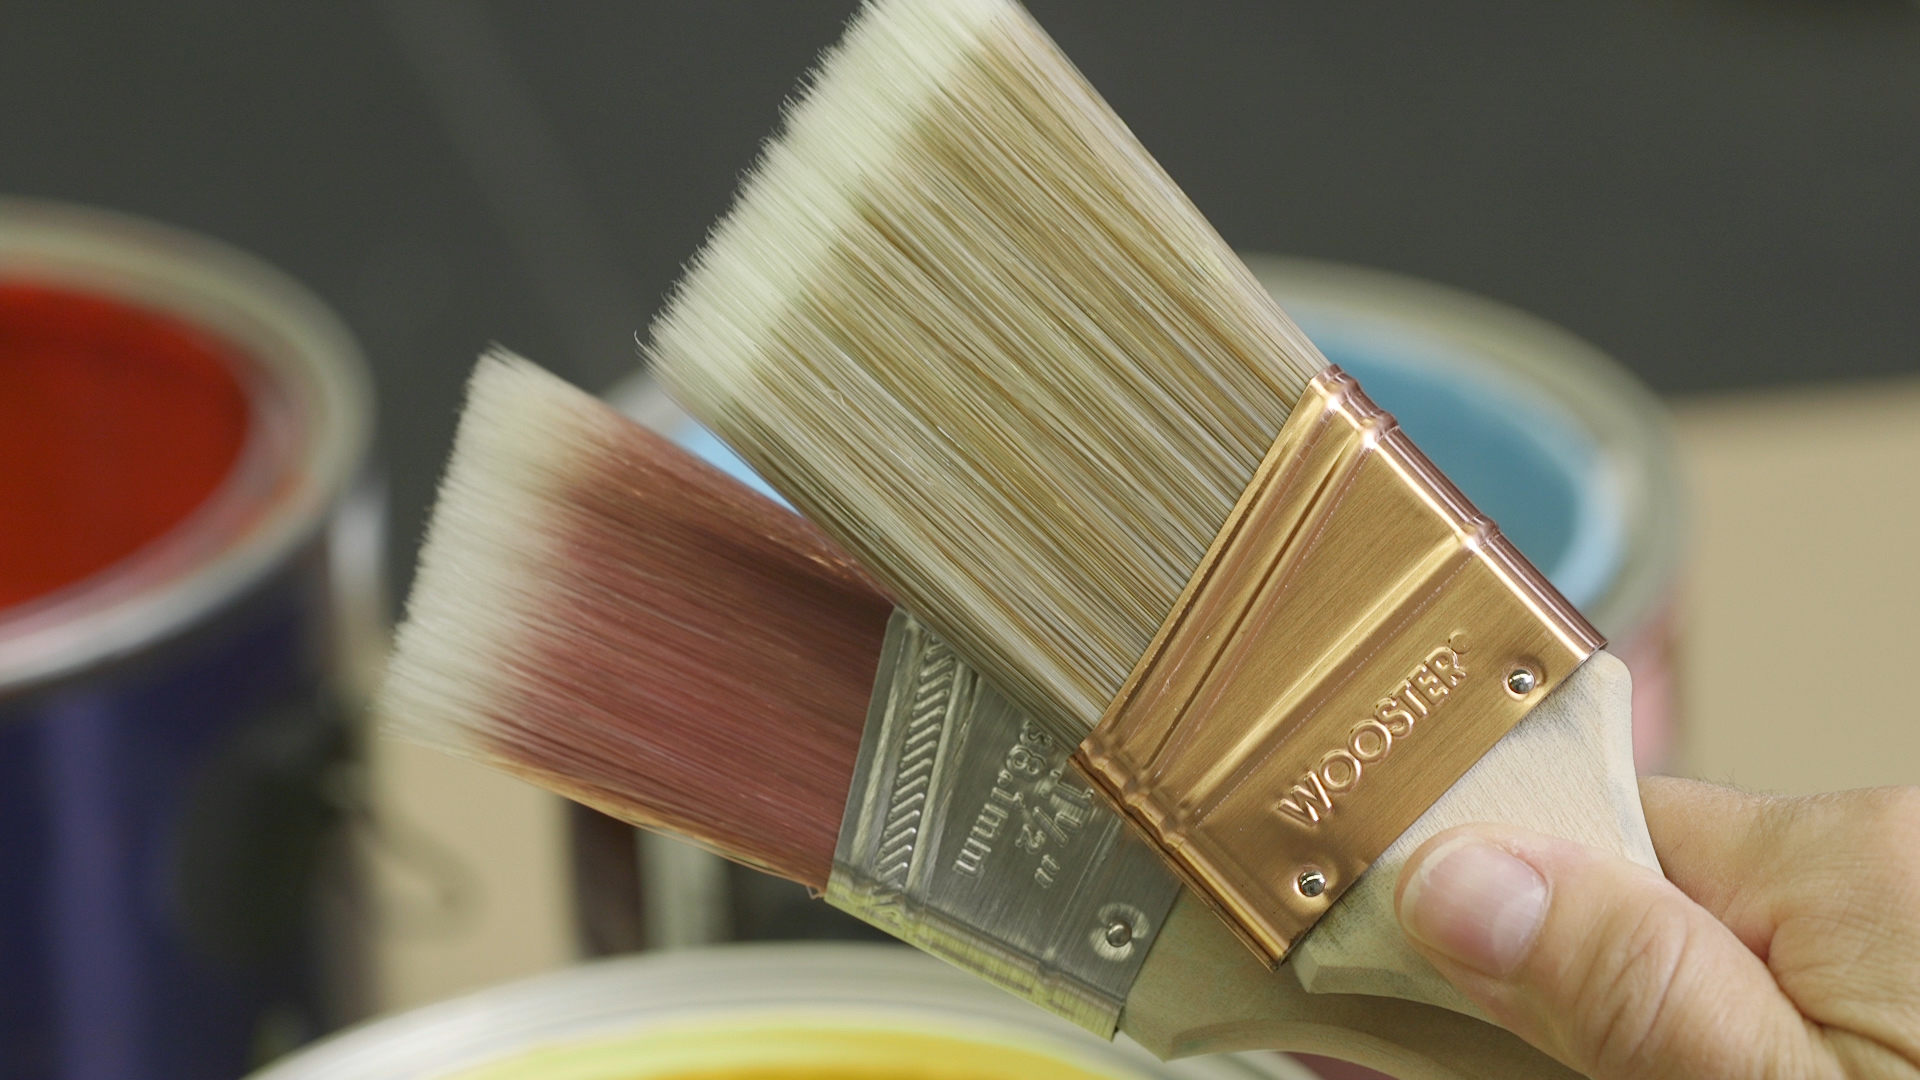 How to Pick a Paint Brush - Consumer Reports